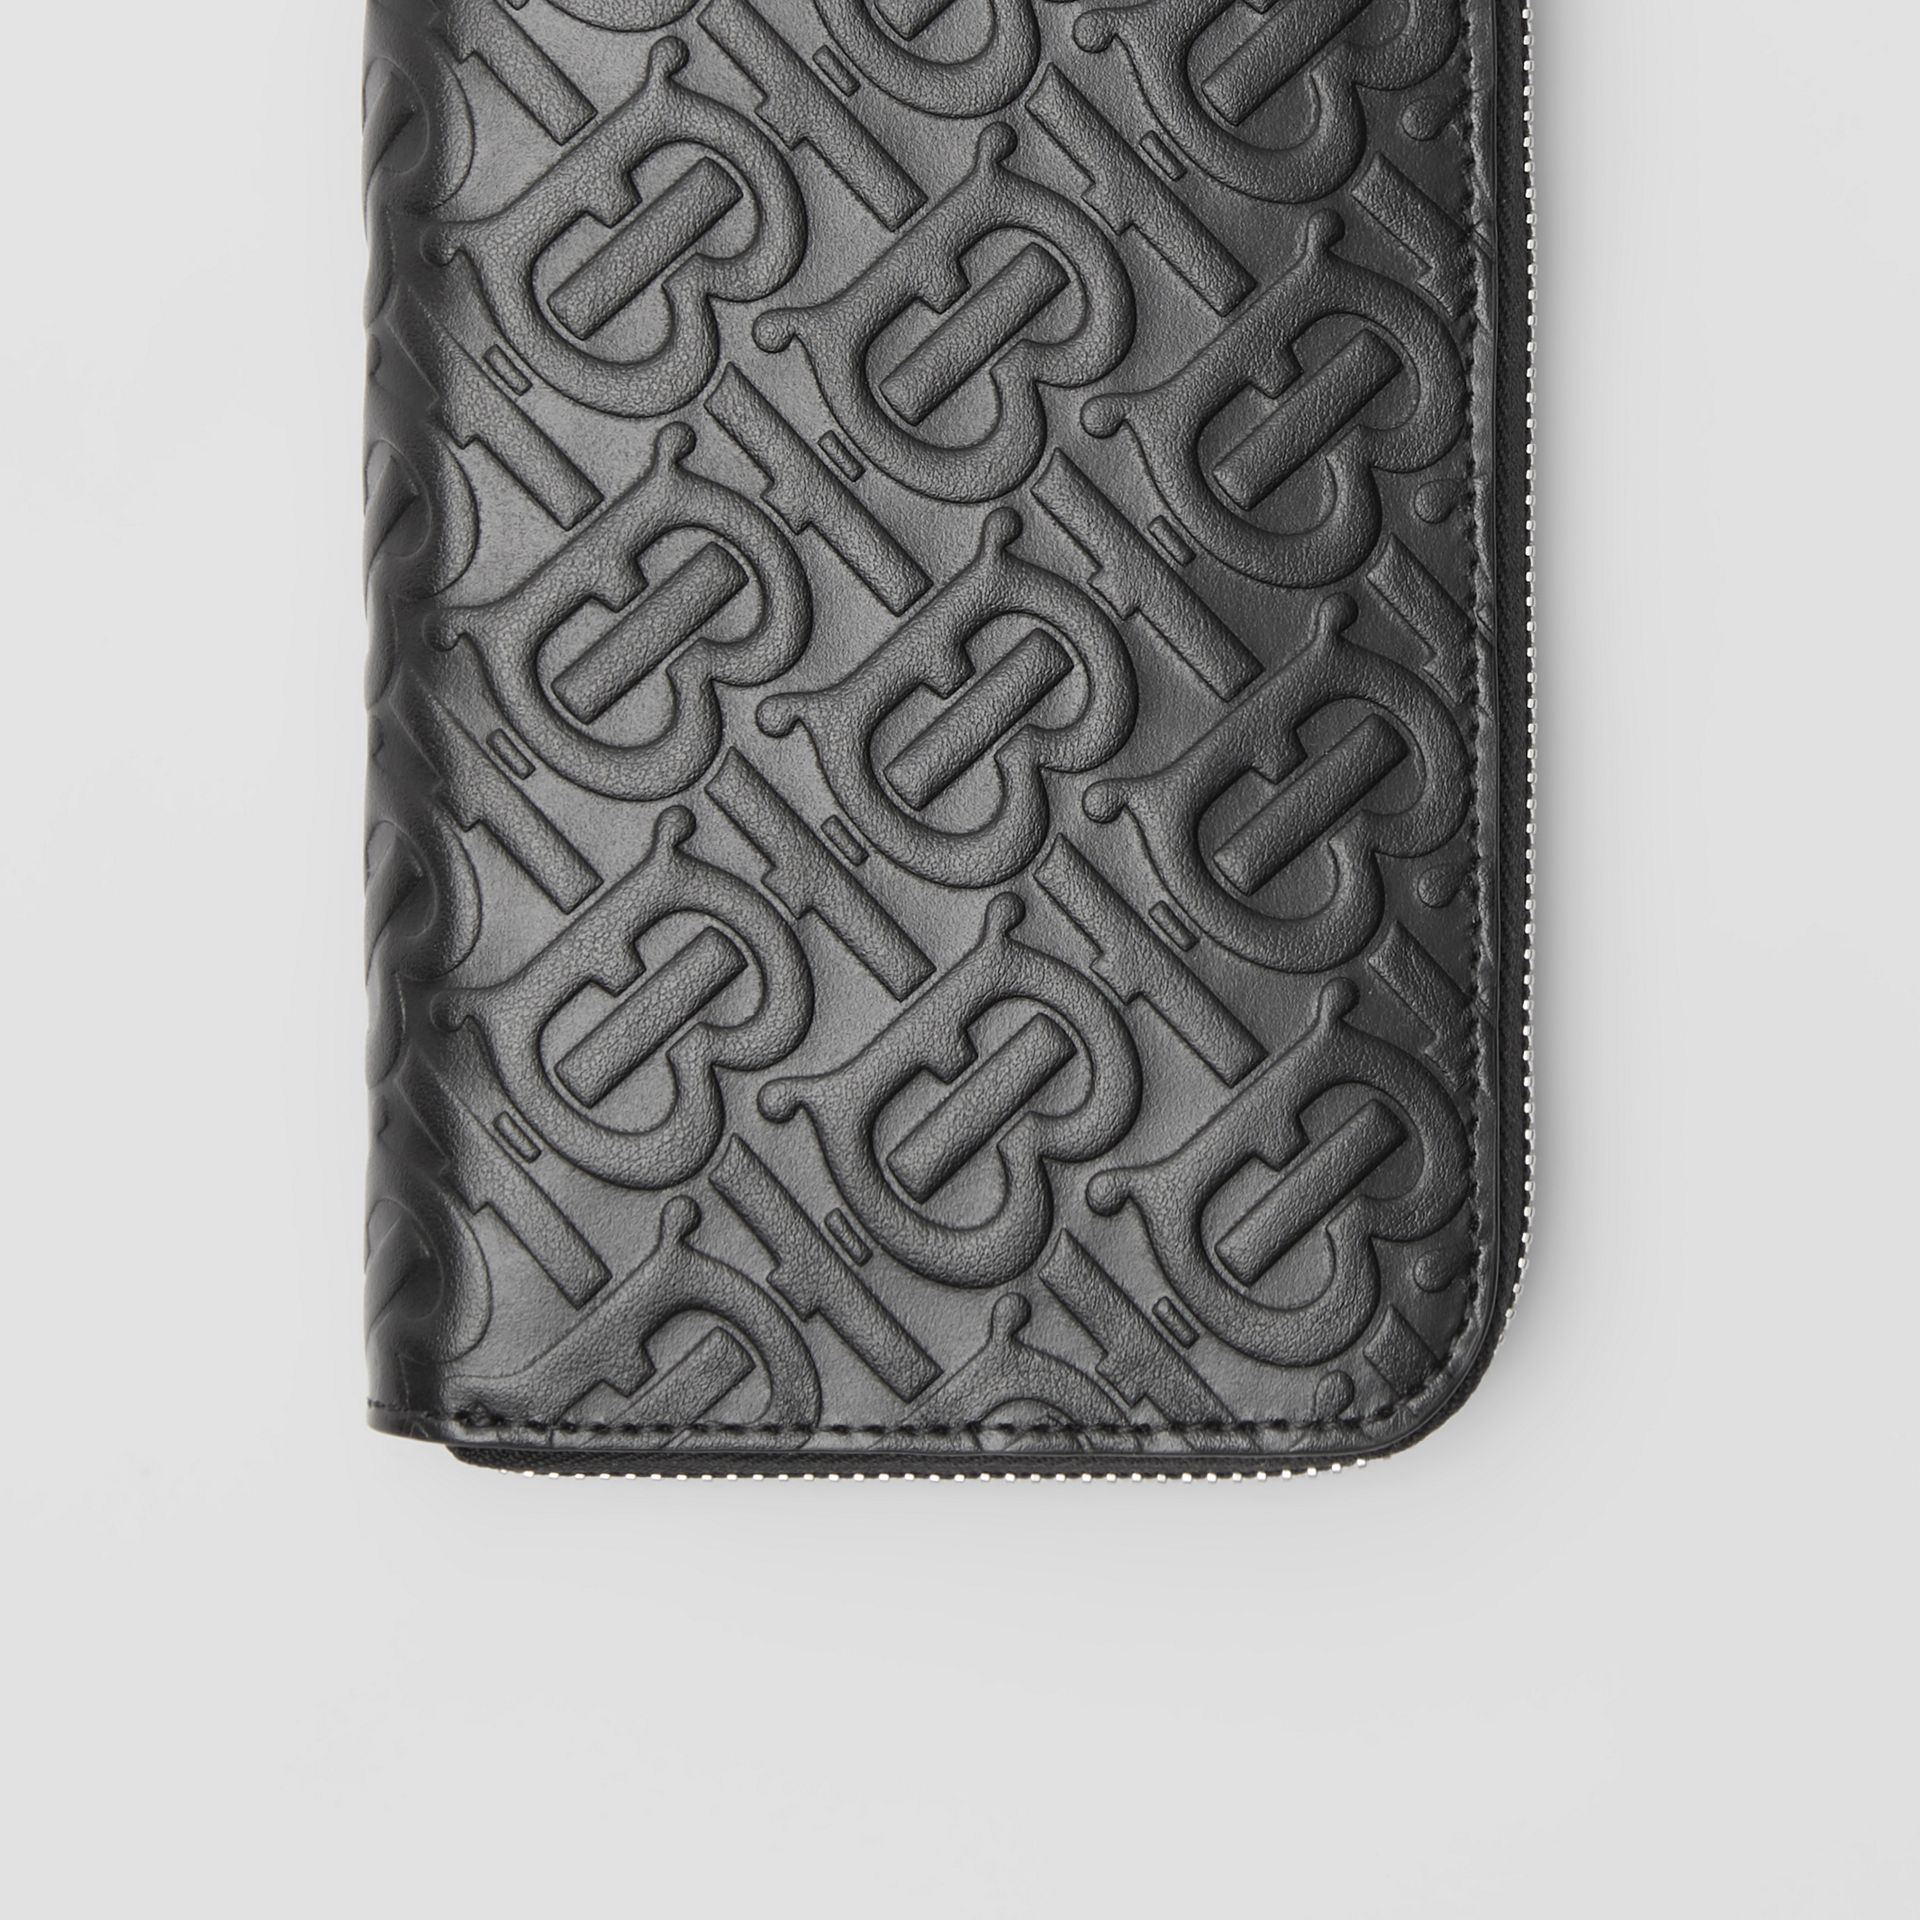 Monogram Leather Ziparound Wallet in Black | Burberry - gallery image 1